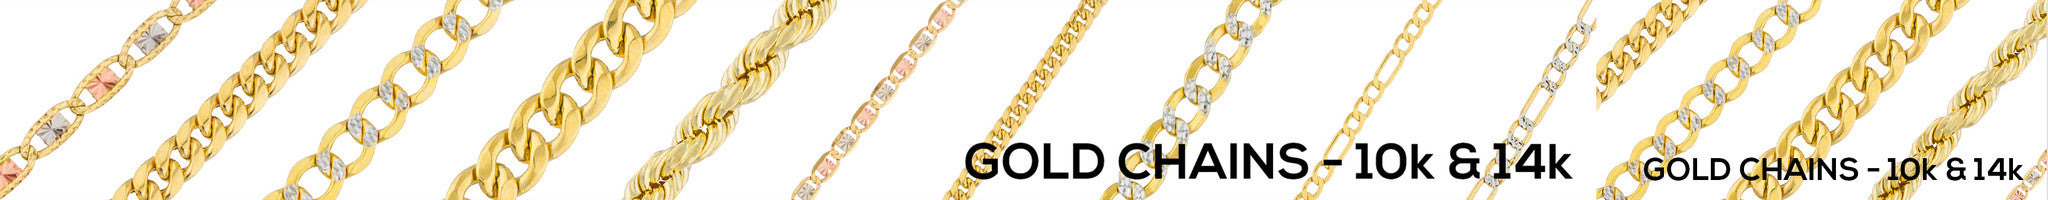 Real Gold Chains - 14K & 10K